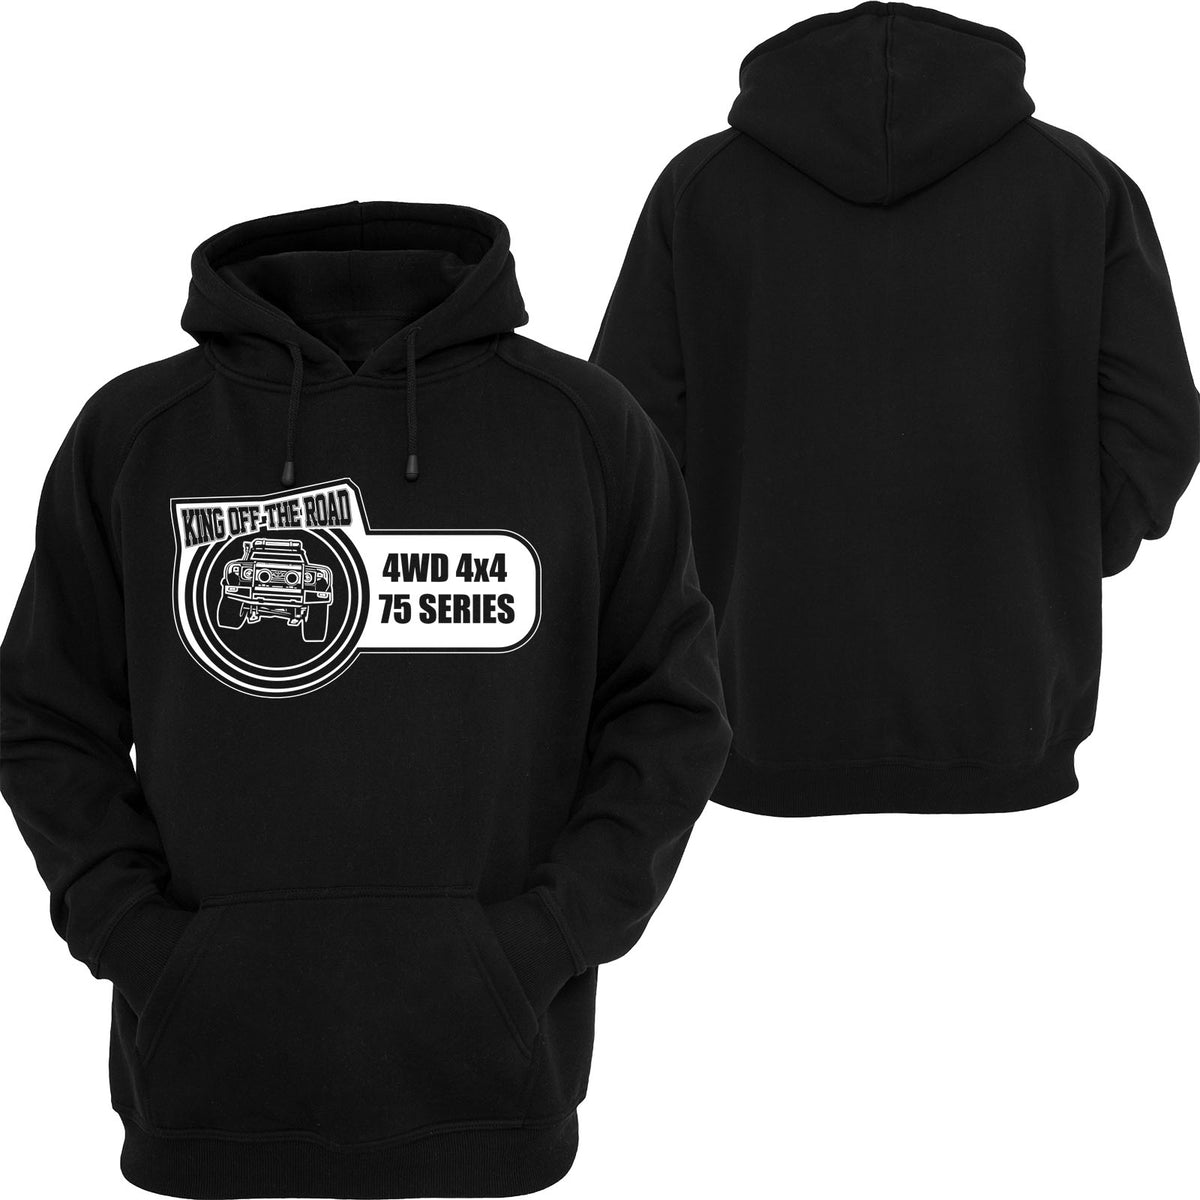 Landcruiser 75 Series King Off The Road Hoodie / Tshirt / Singlet - Chaotic Customs